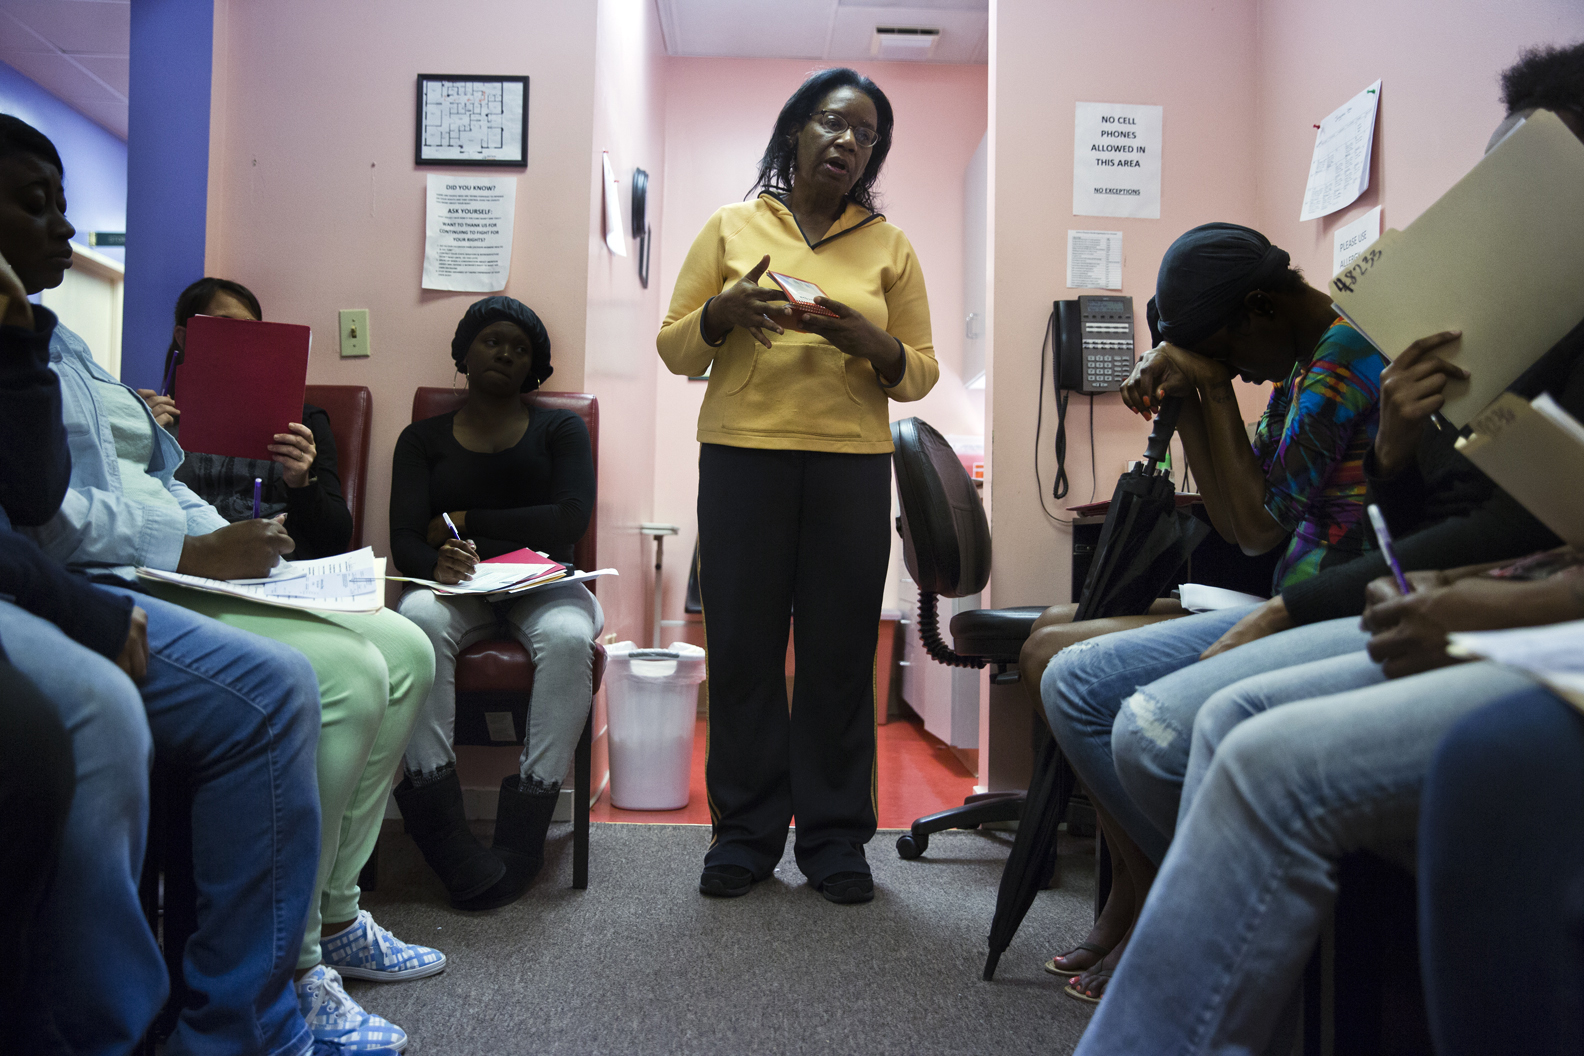 Miss Betty conducts a state mandated counseling session at the Jackson Women's Health Organization, to women considering abortion.